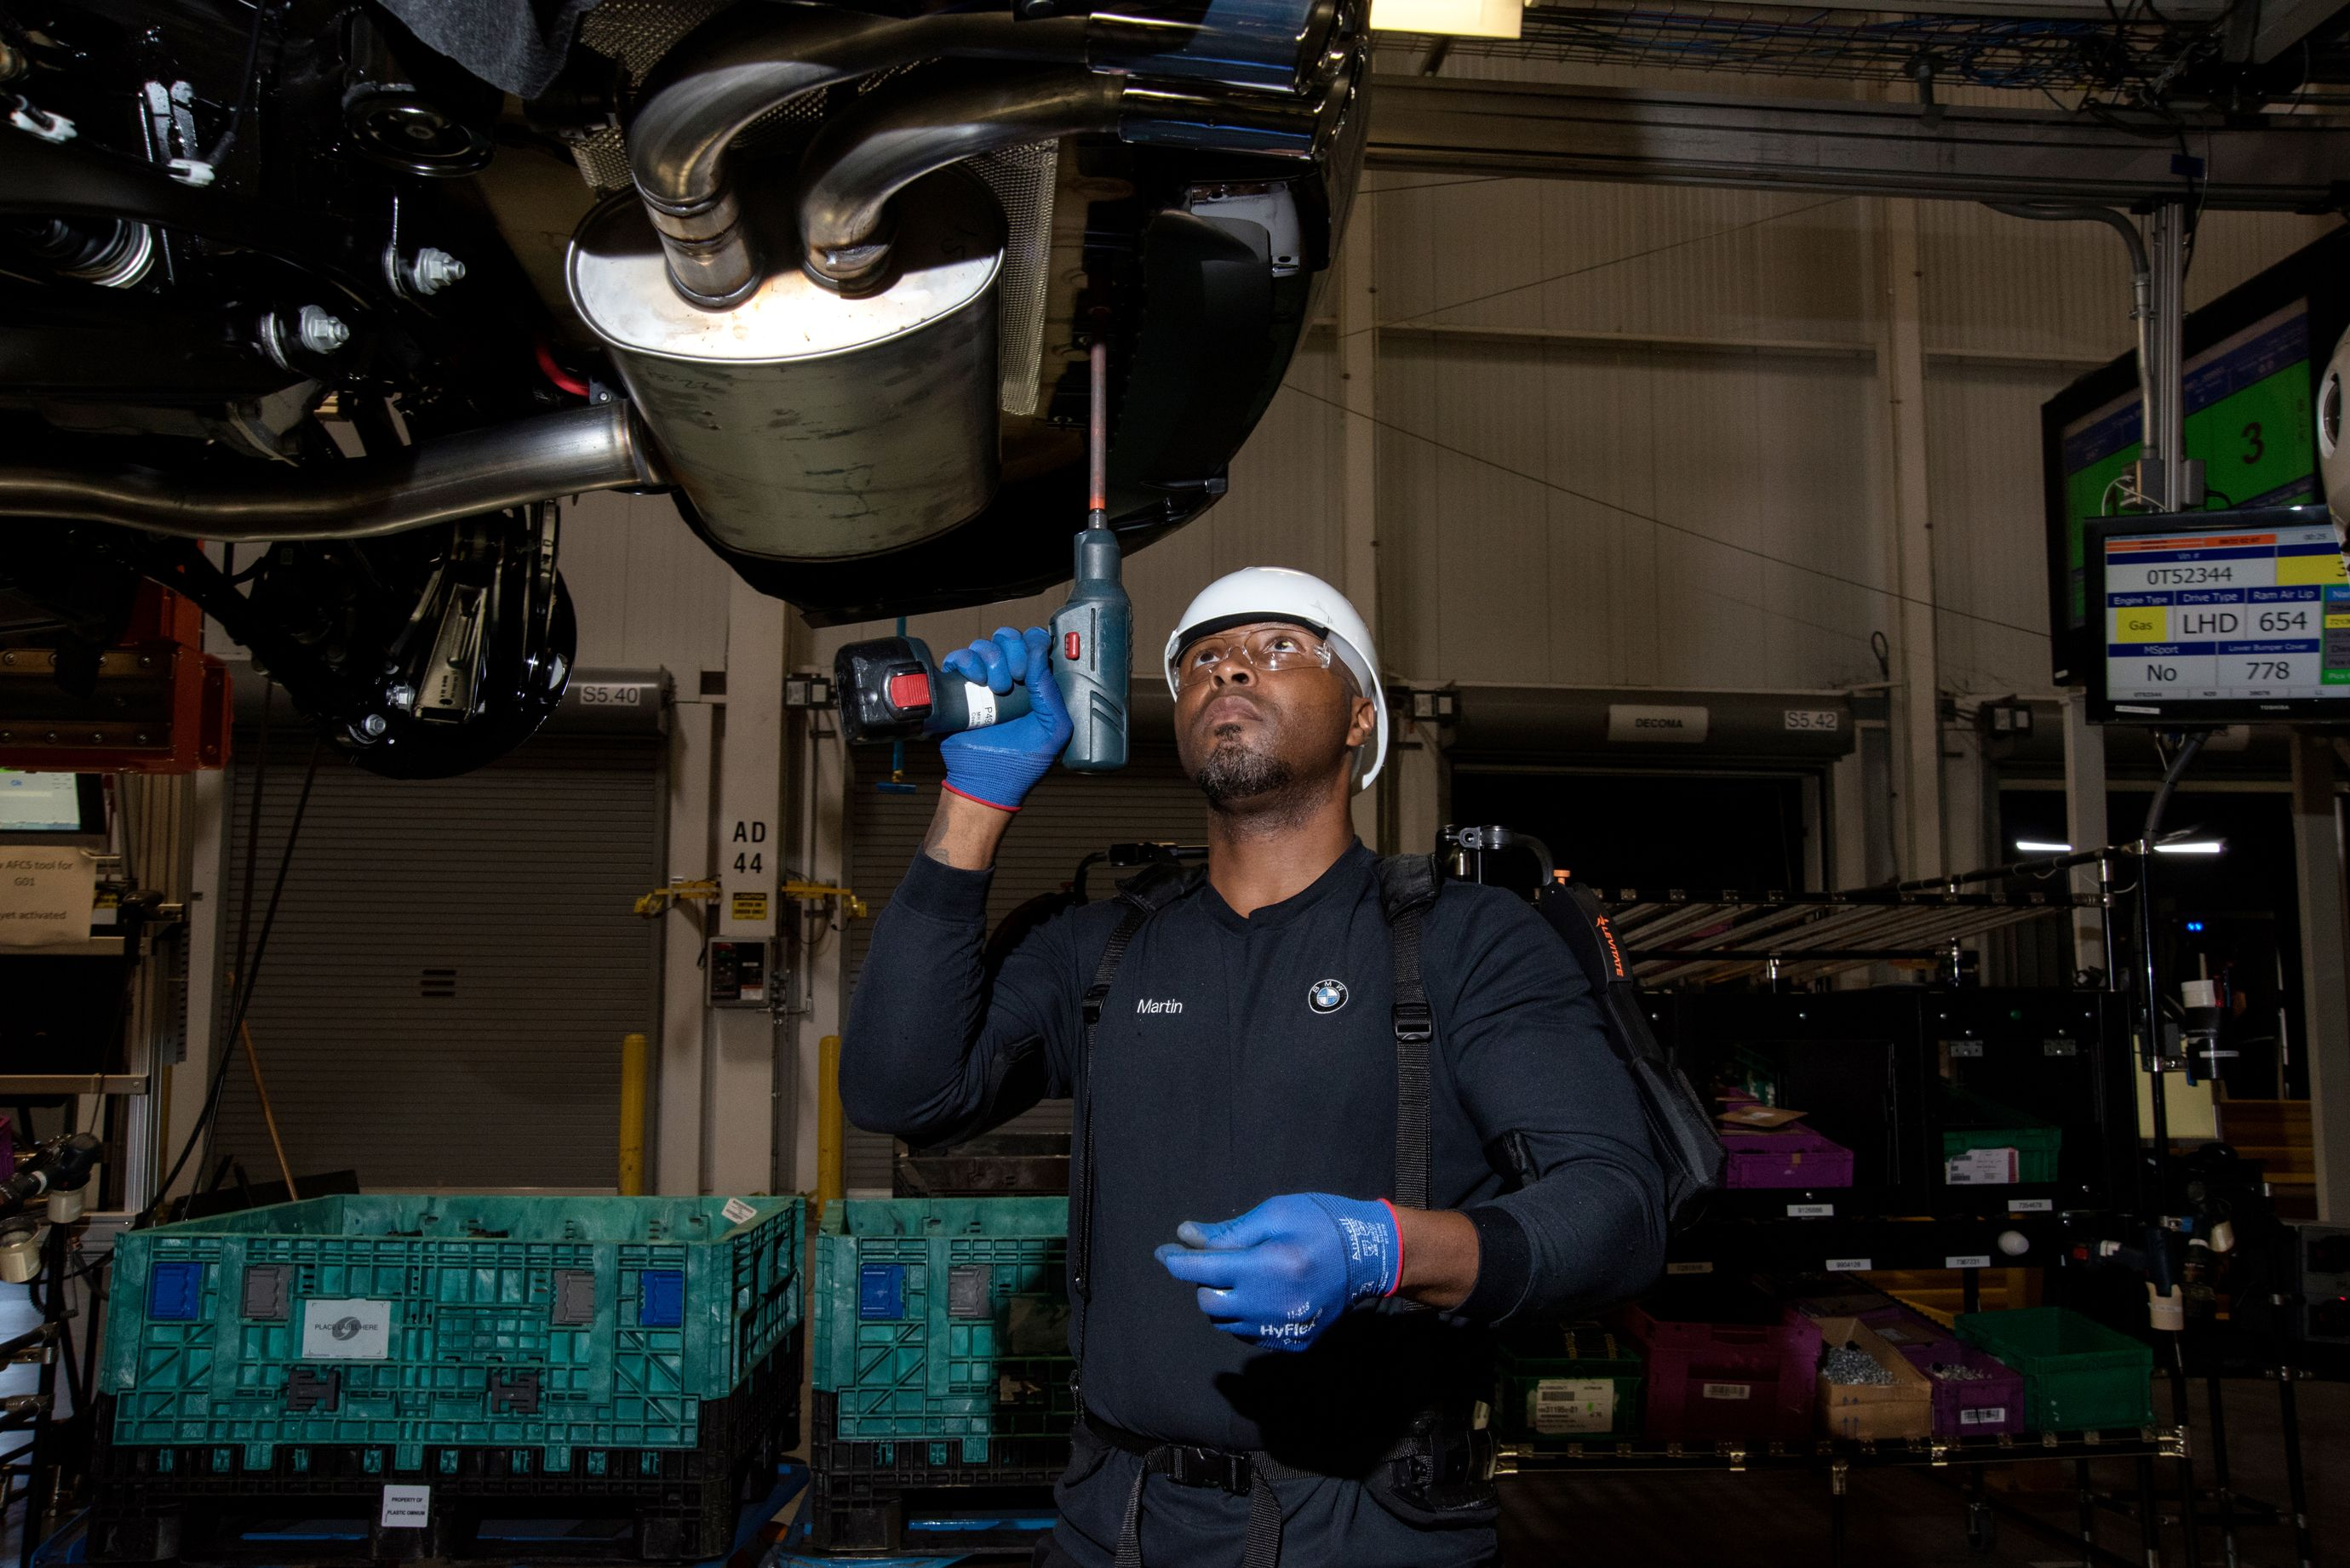 Assembly line worker Lee Martin fastens screws to the underbody of a car using an ergonomic arm support to reduce the strain of long periods working with his arms raised. (6 of 7)